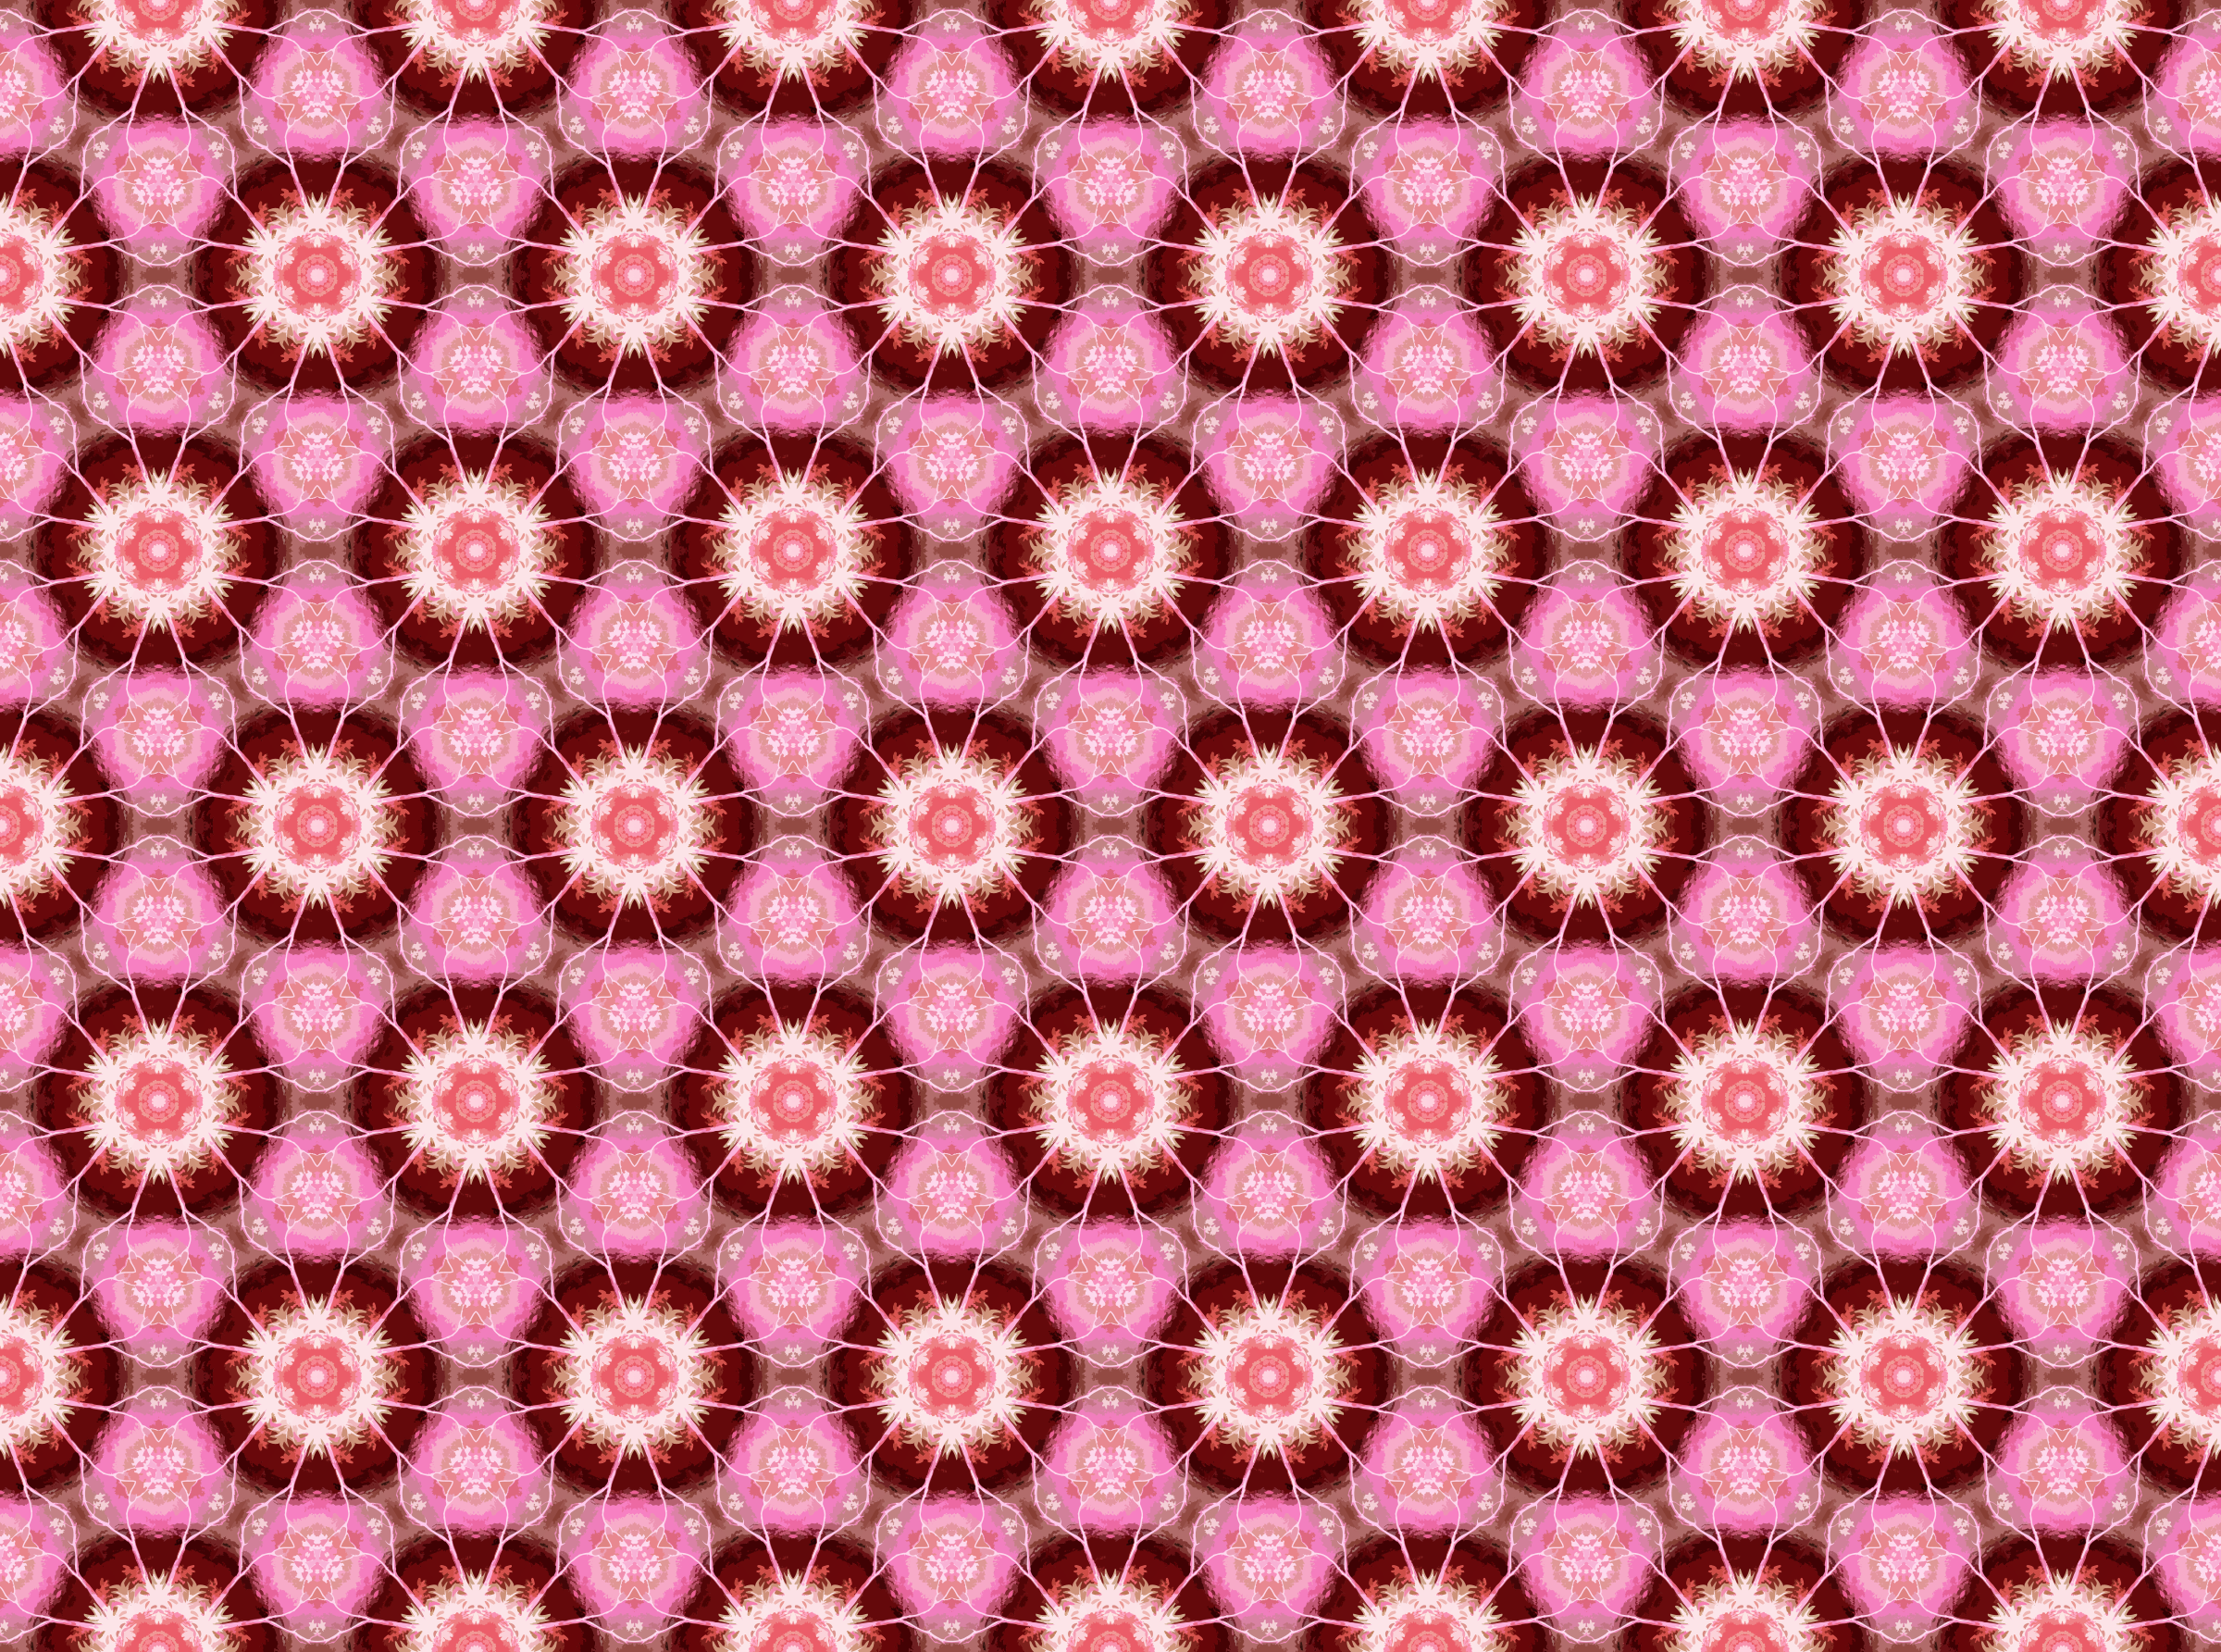 Background pattern 132 (colour 2) by Firkin